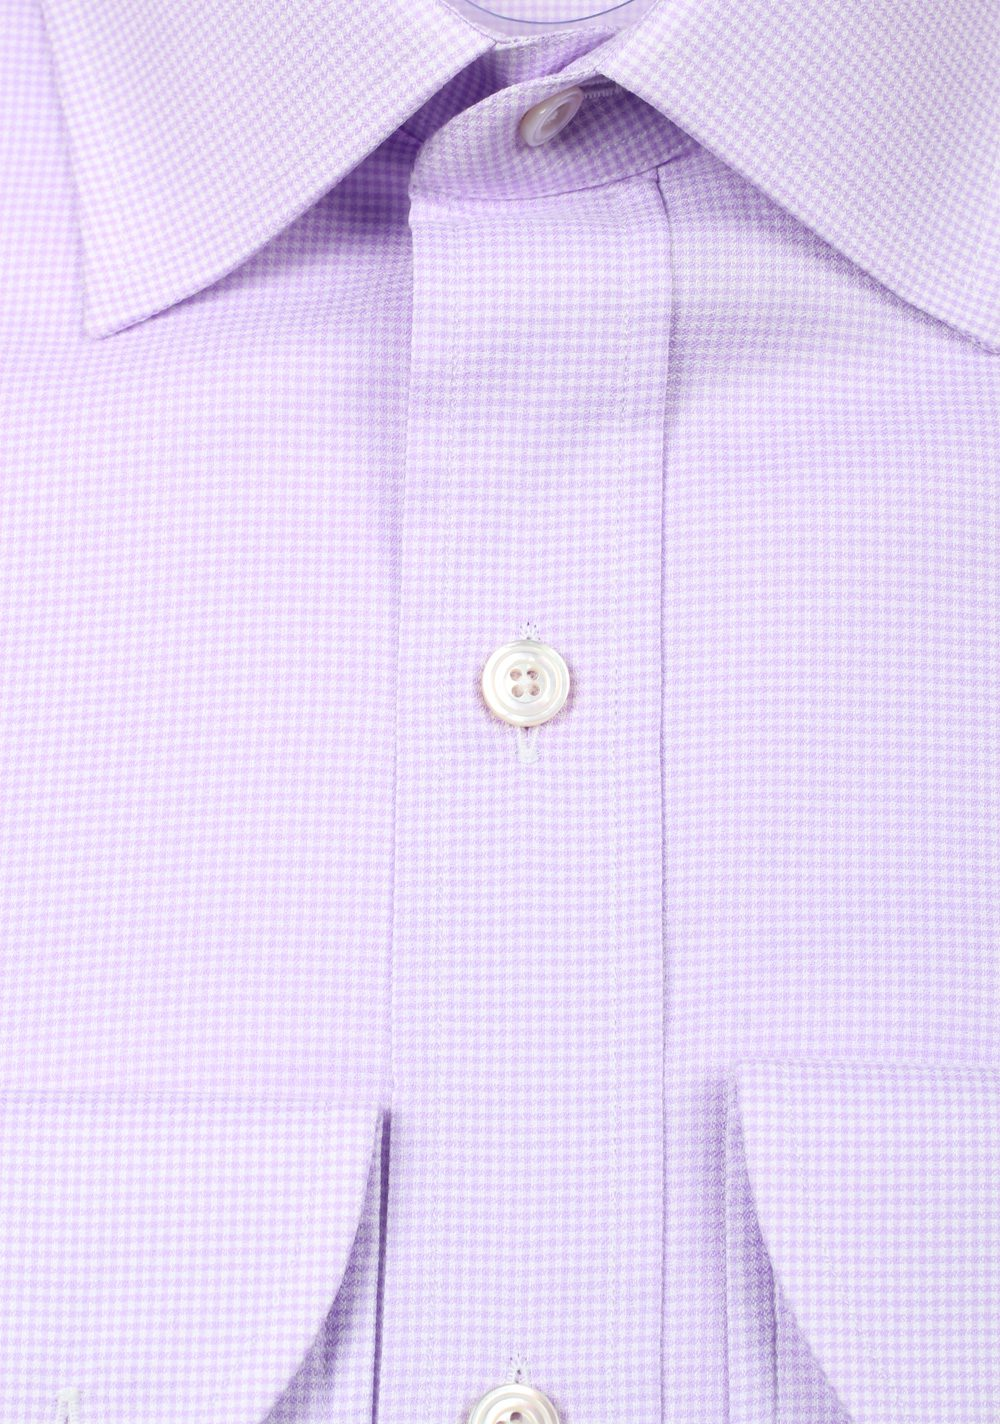 TOM FORD Patterned Lilac Dress Shirt Size 44 / 17,5 U.S. | Costume Limité